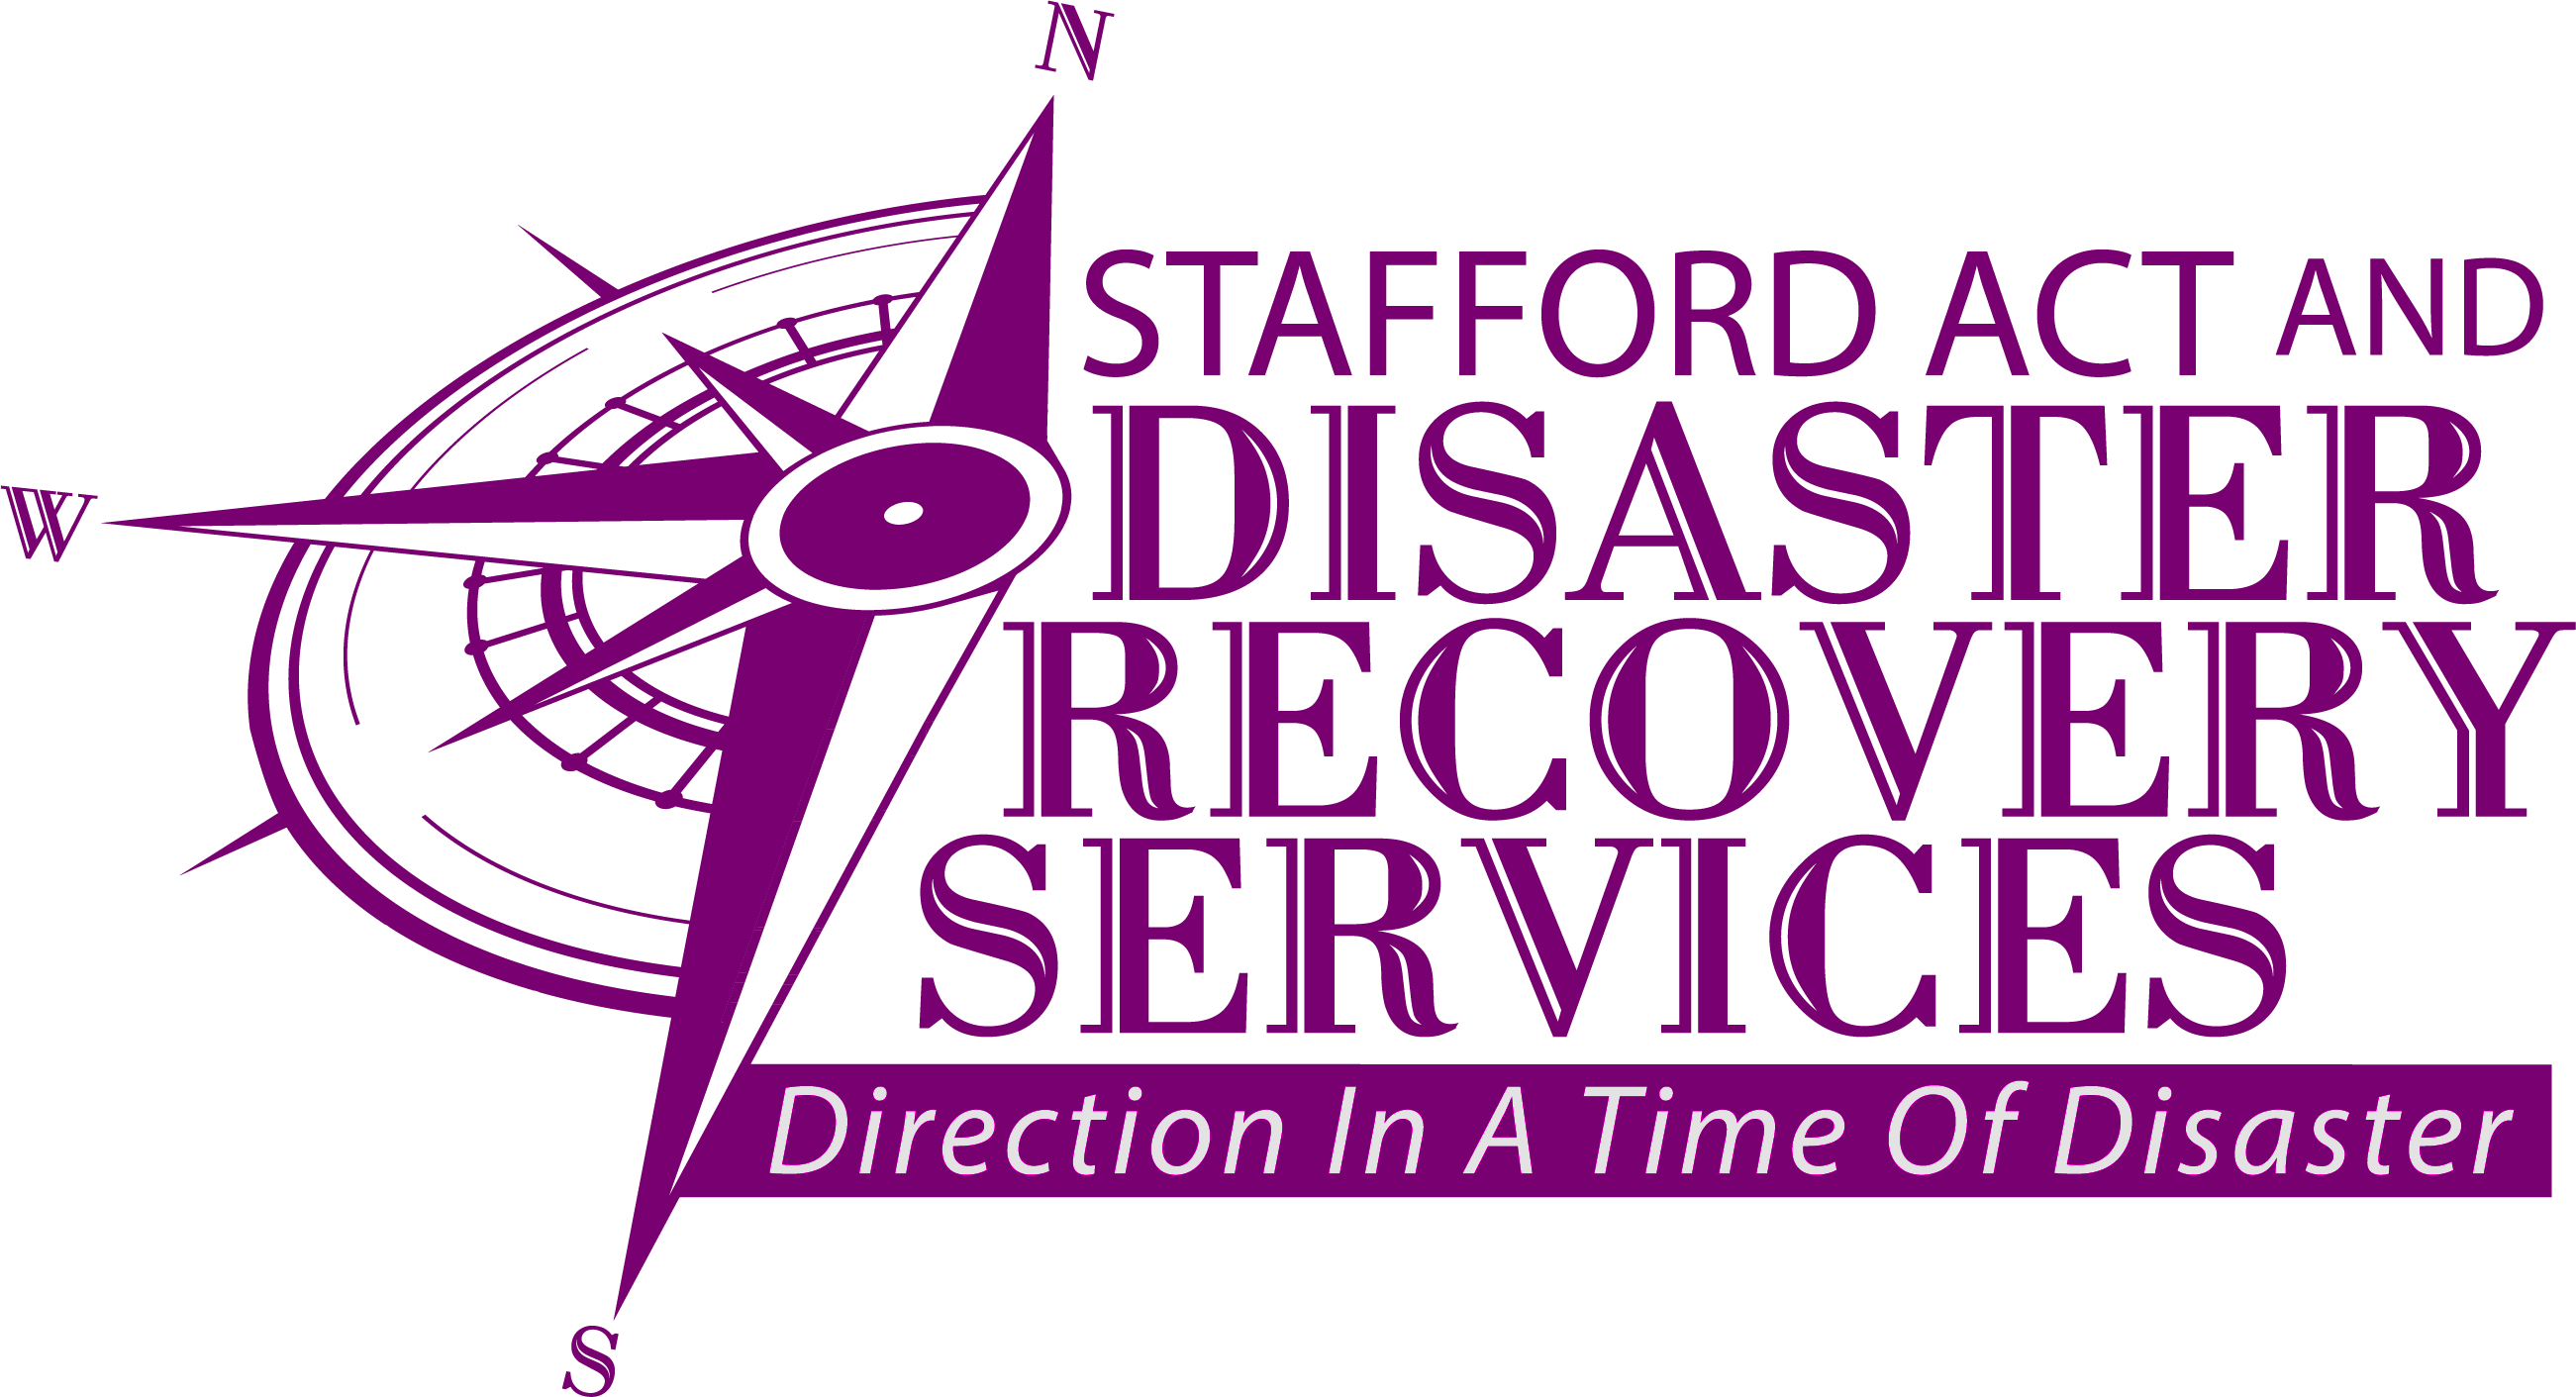 Stafford Act and Disaster Recovery Services